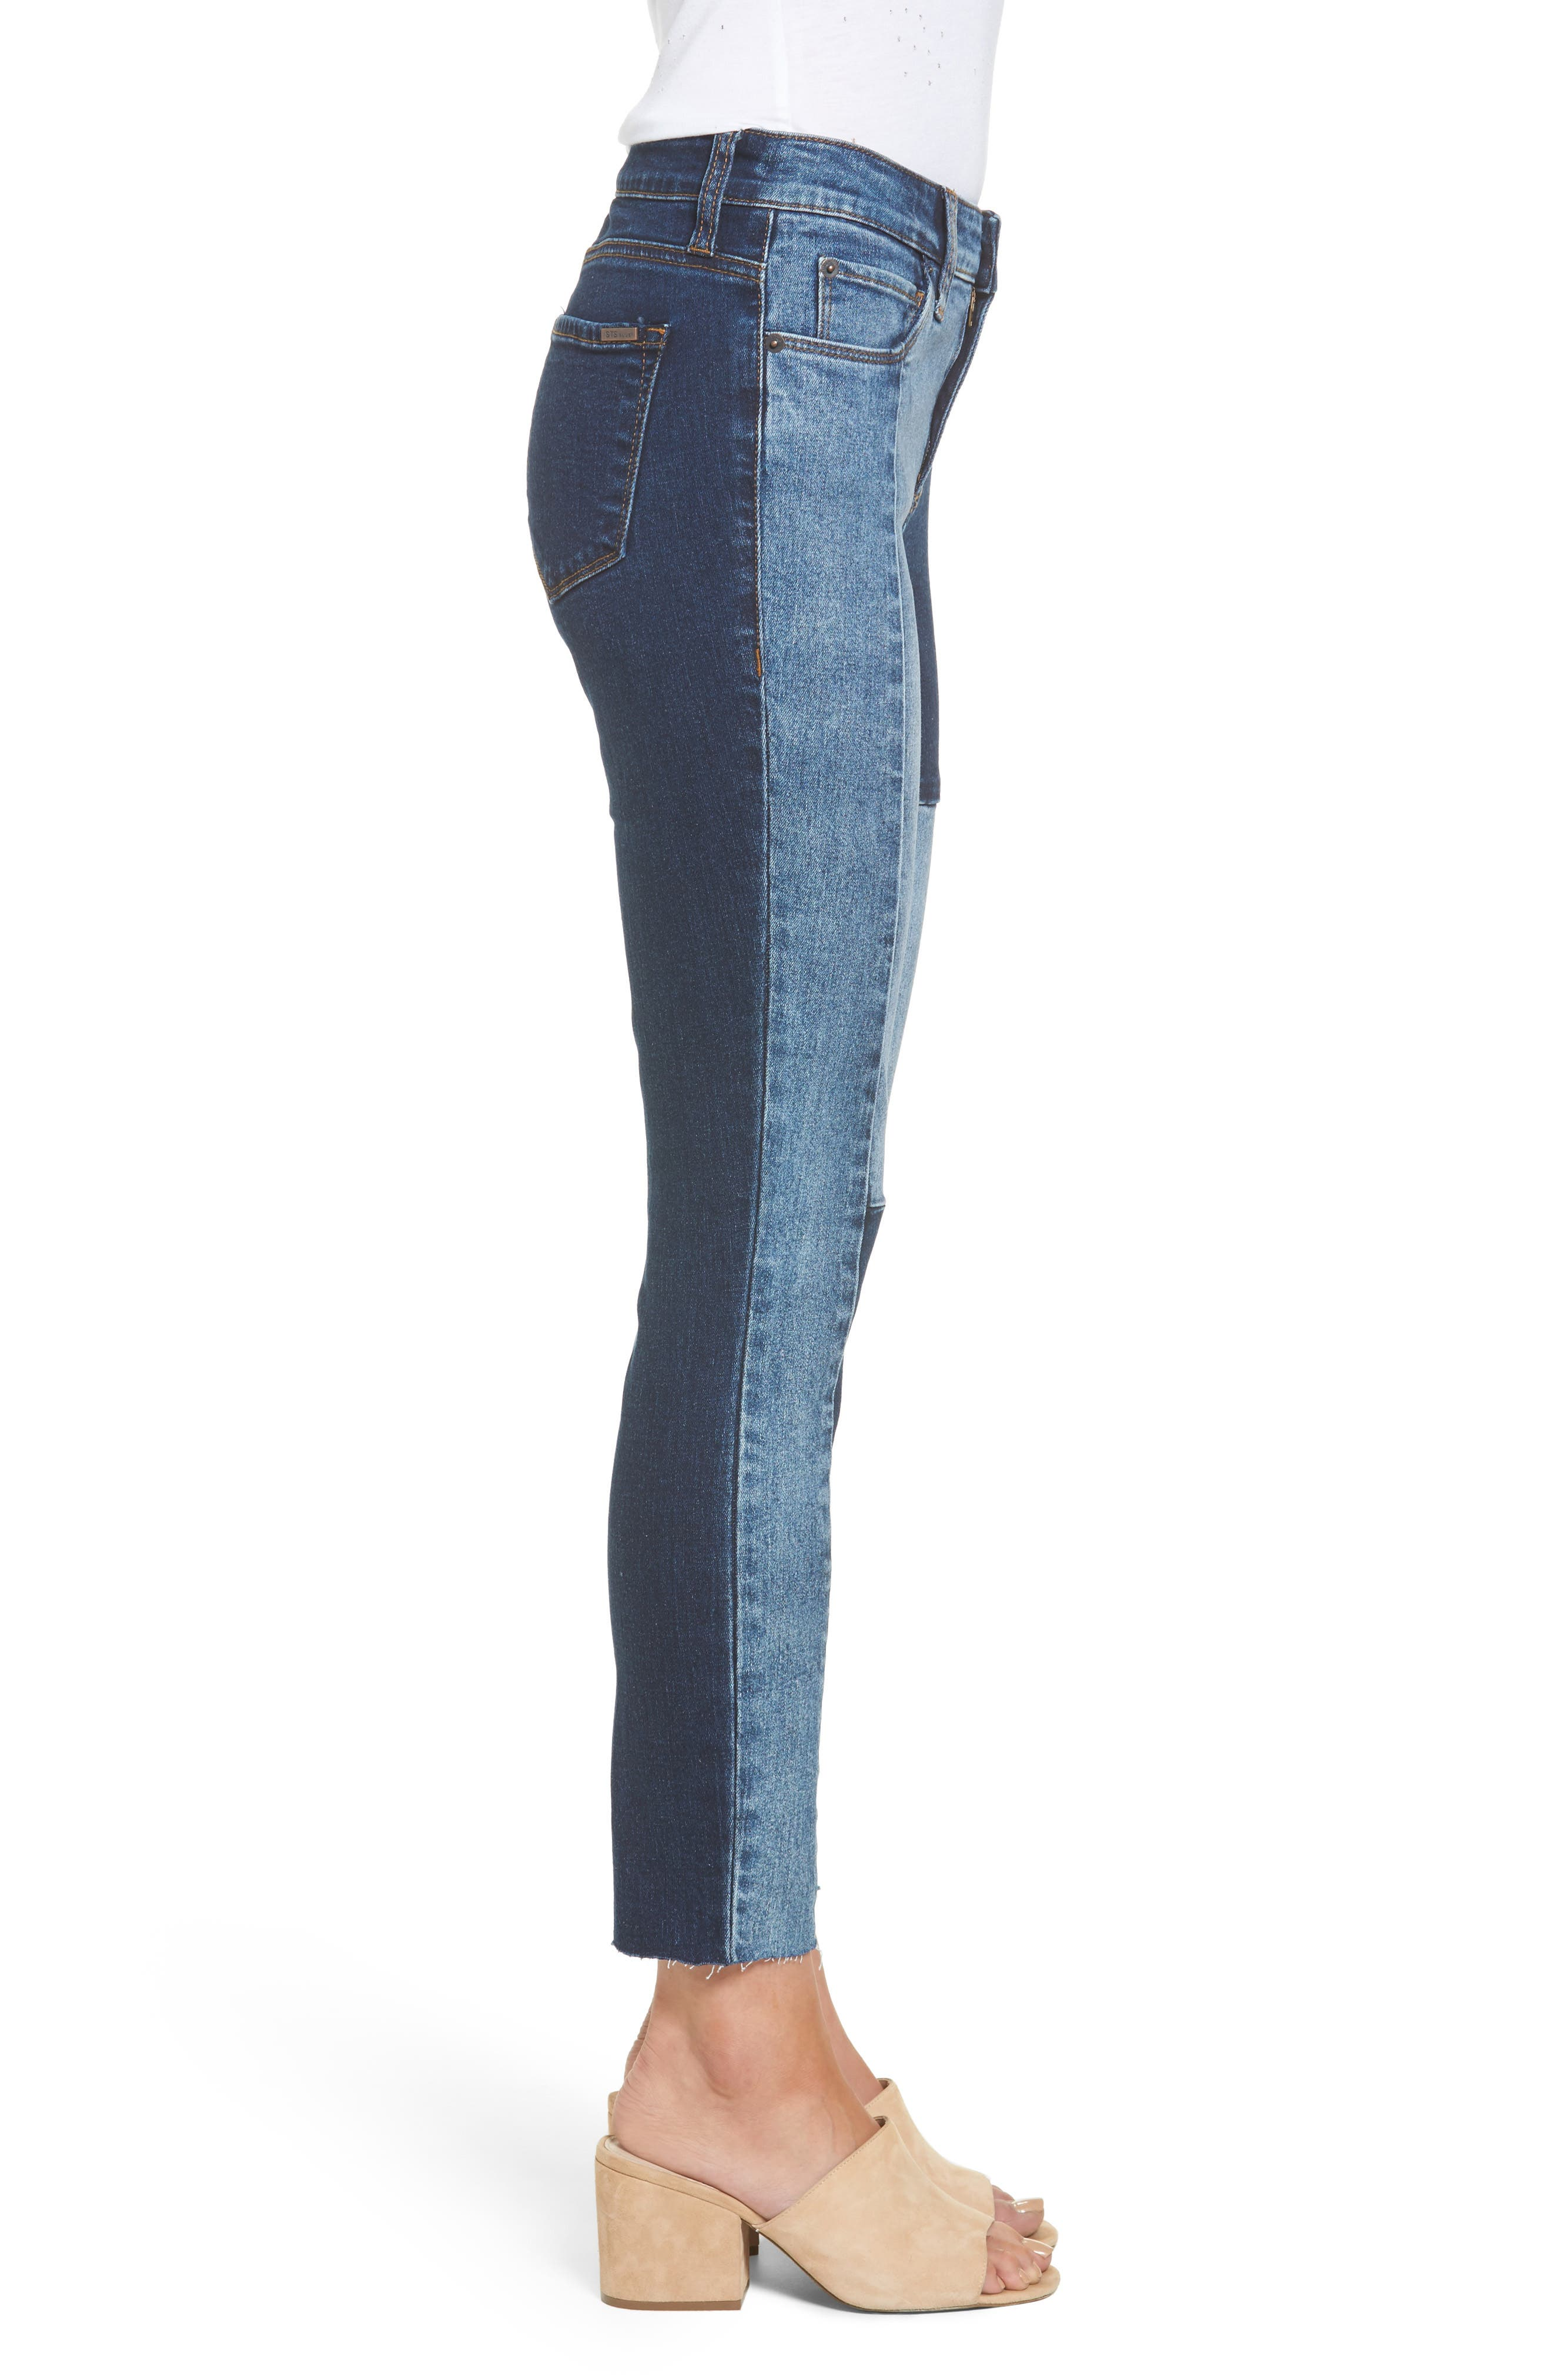 Piper Colorblock Ankle Skinny Jeans,                             Alternate thumbnail 3, color,                             400